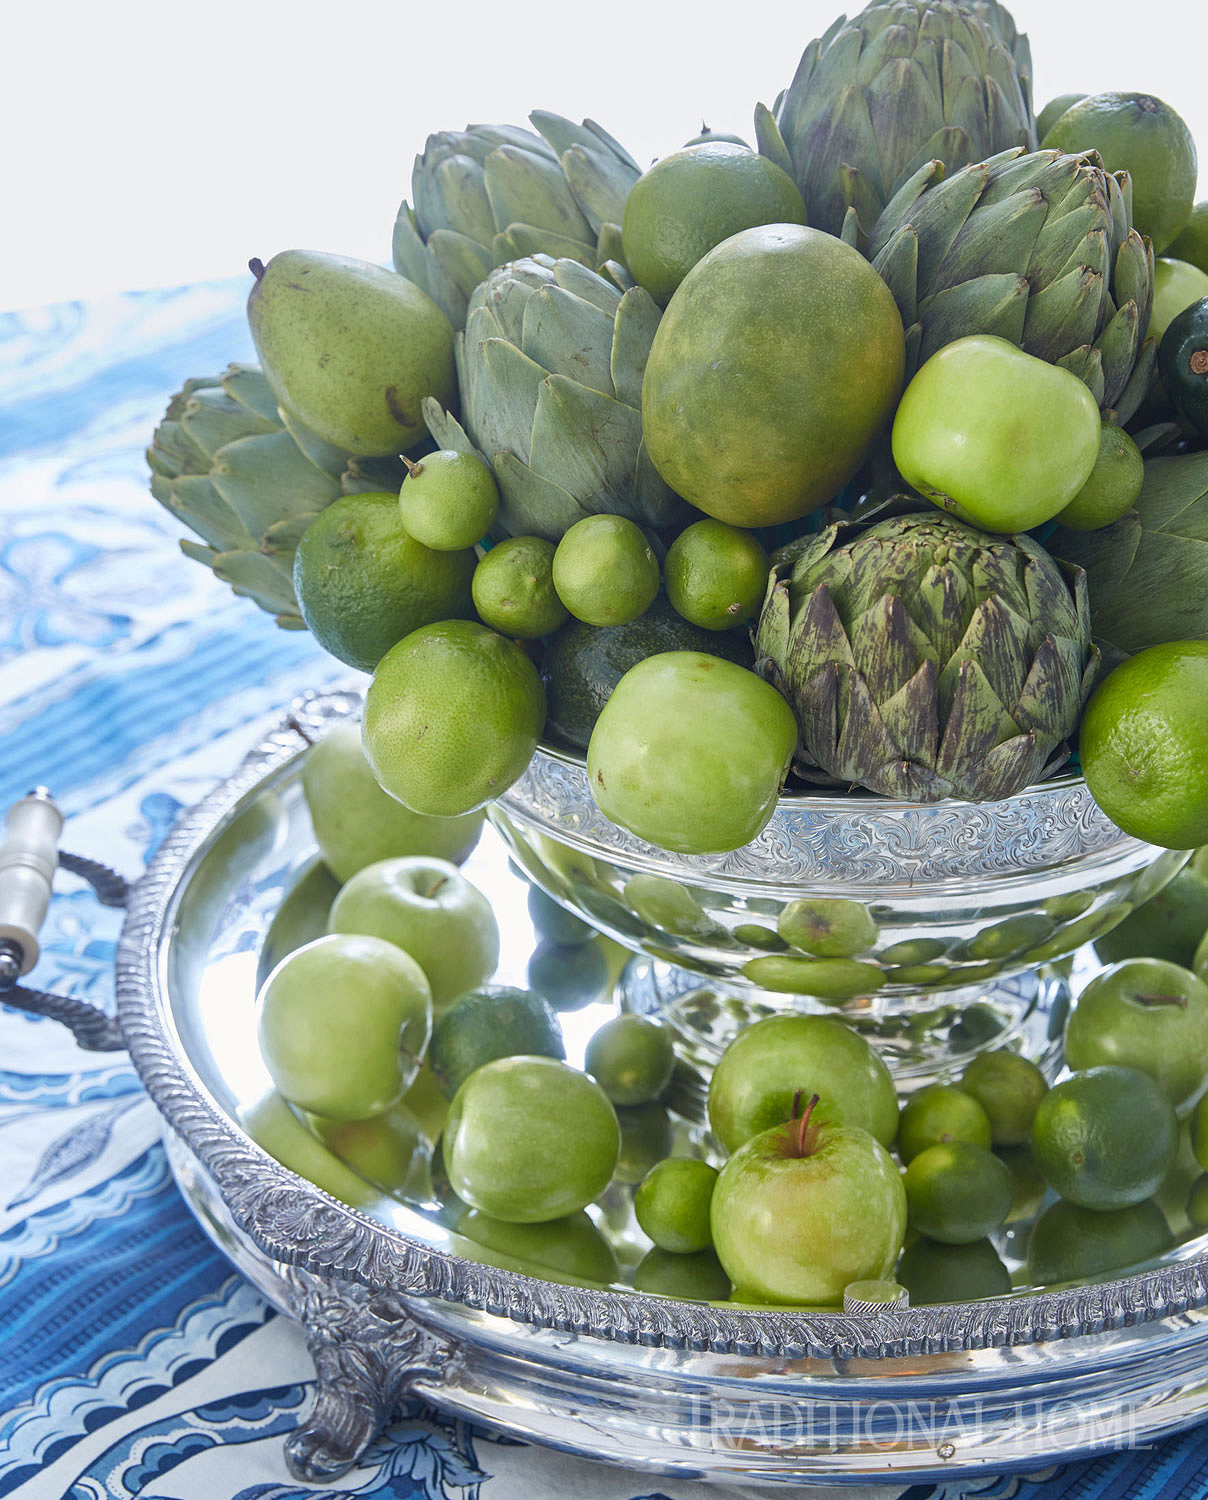 green centerpiece with artichokes, pears, apples, limes and avocado